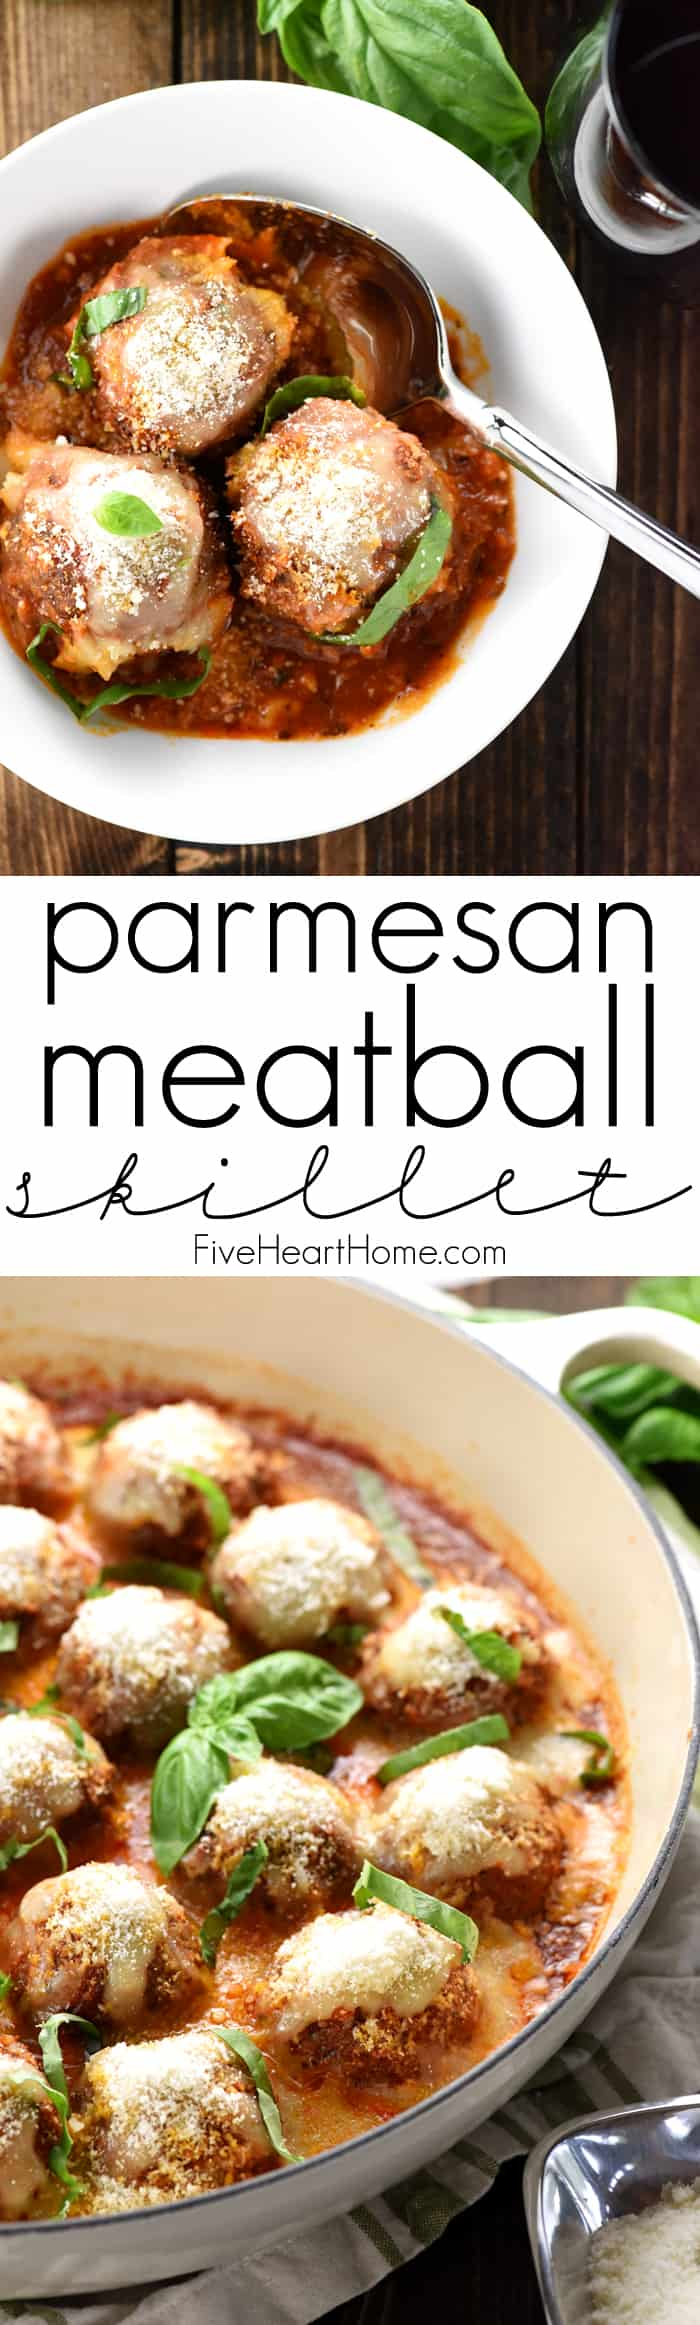 Parmesan Meatball Skillet ~ this easy-to-make, family-pleasing ground beef recipe features tender baked meatballs simmered in marinara and smothered with cheese, delicious served over pasta or piled on meatball subs! | FiveHeartHome.com